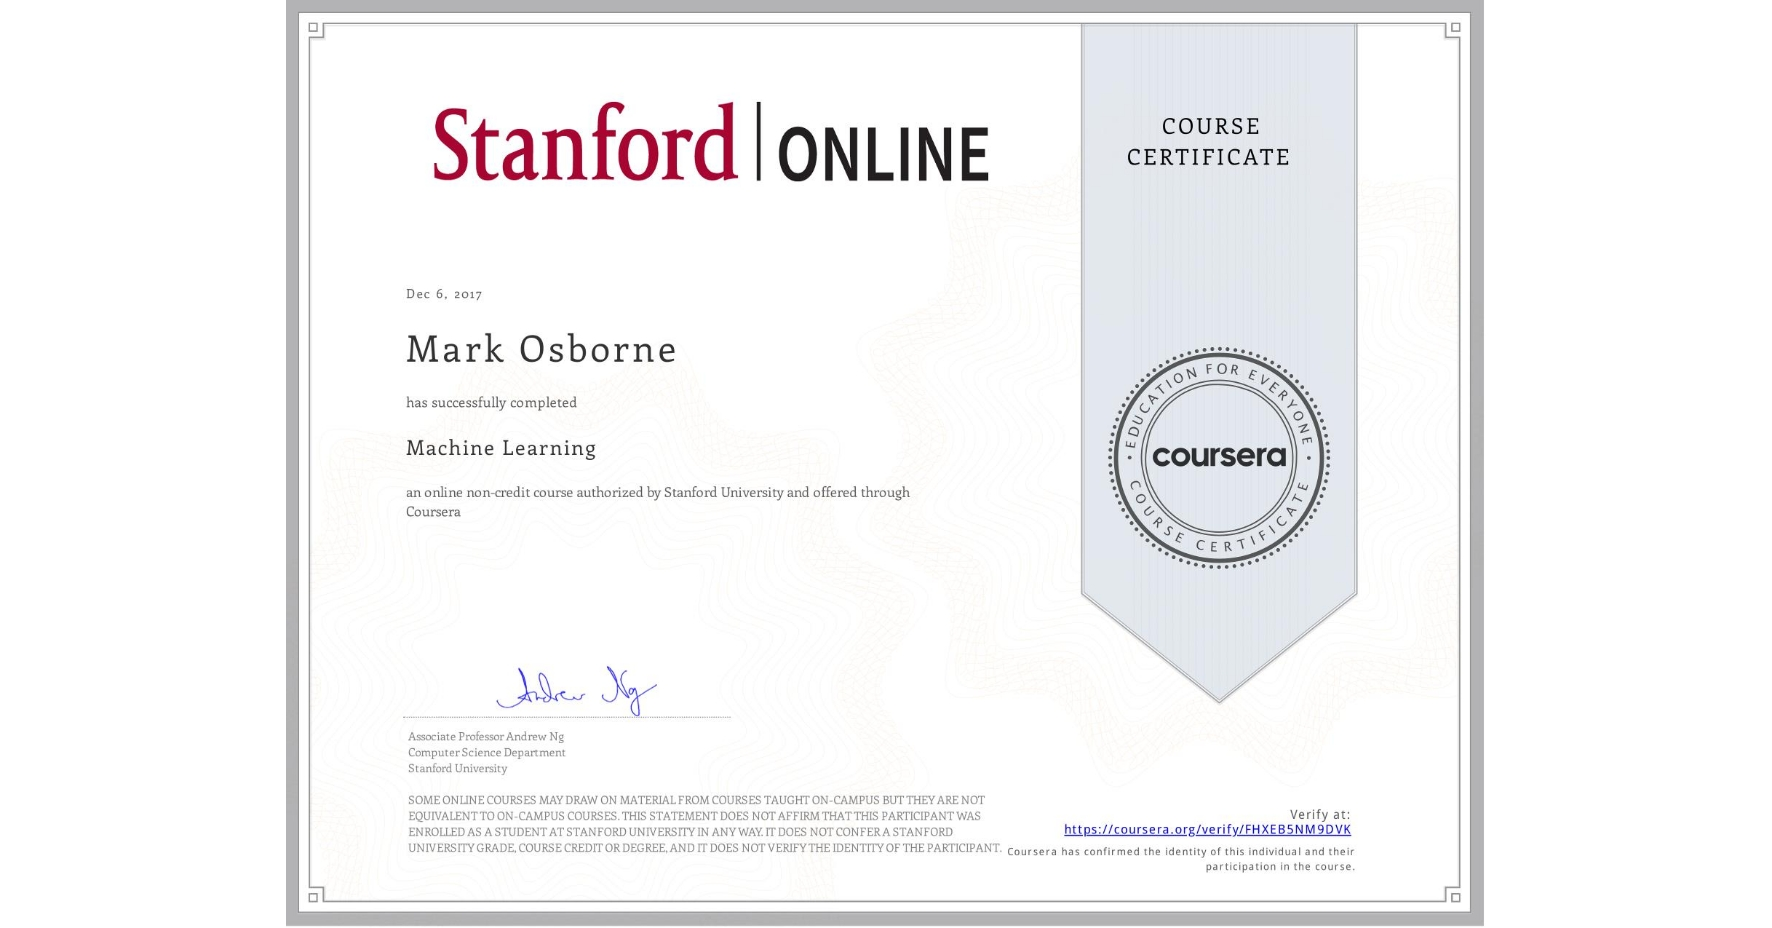 View certificate for Mark Osborne, Machine Learning, an online non-credit course authorized by Stanford University and offered through Coursera